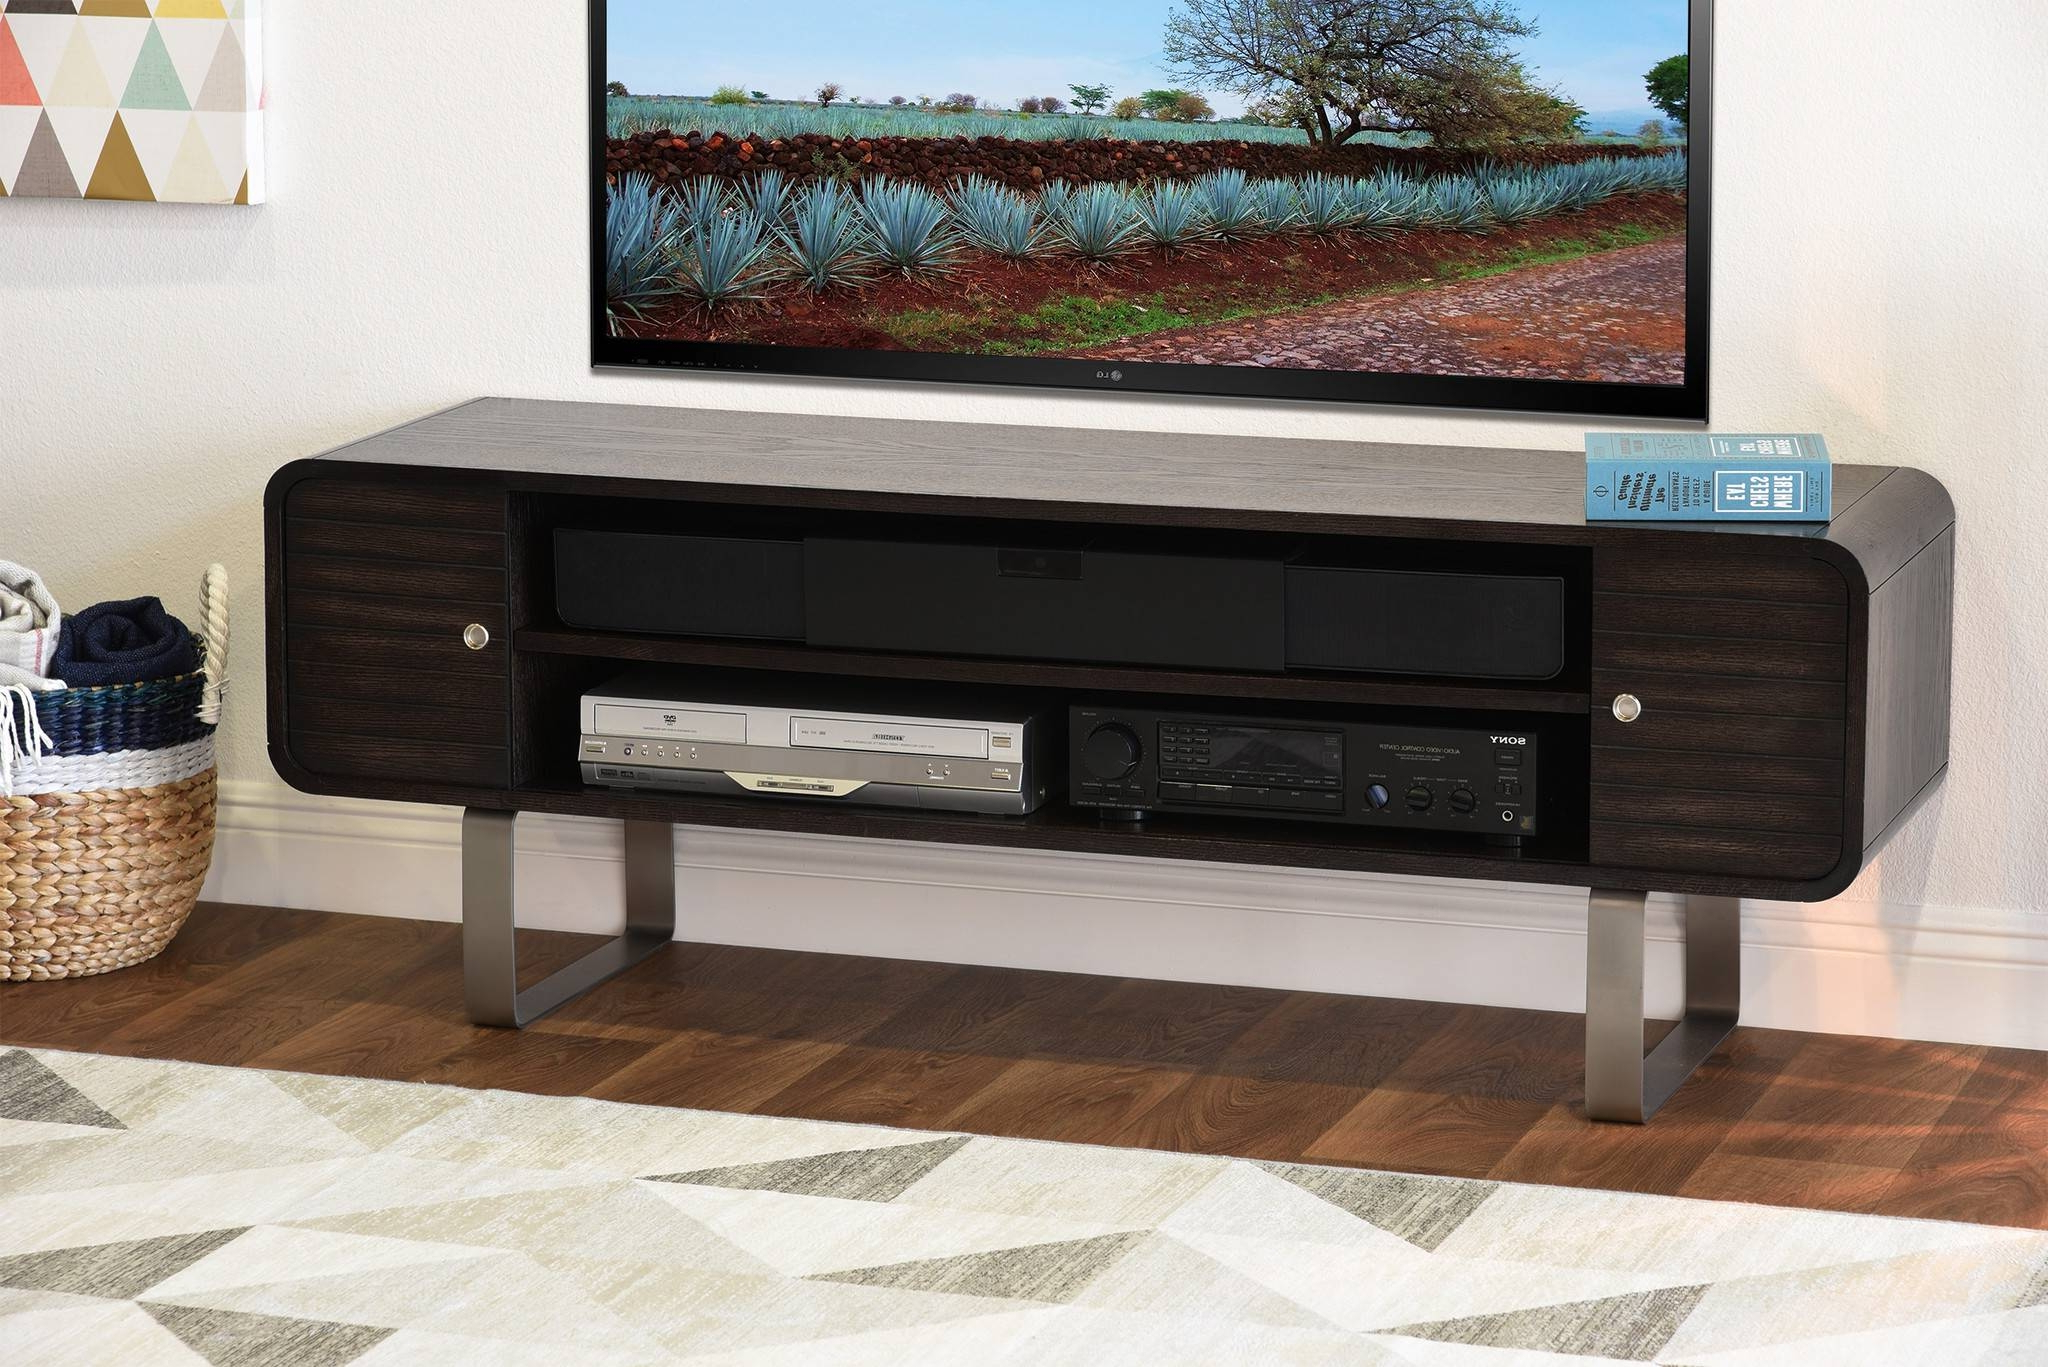 Preferred Tv Stands Rounded Corners Simple Home 2048×1367 Attachment Intended For Tv Stands With Rounded Corners (View 8 of 20)